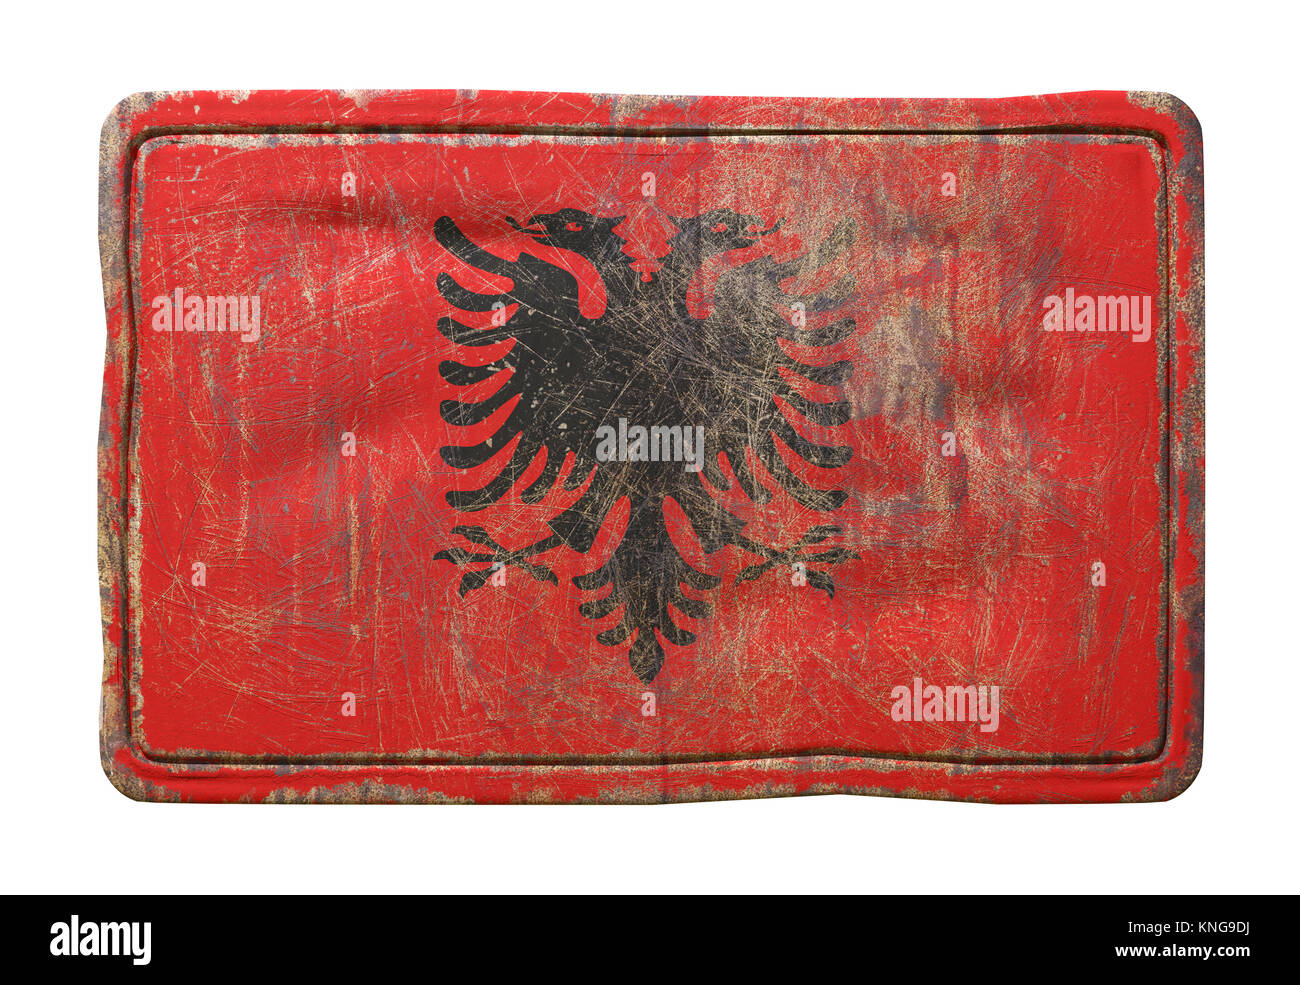 3d rendering of an Albania flag over a rusty metallic plate. Isolated on white background. - Stock Image